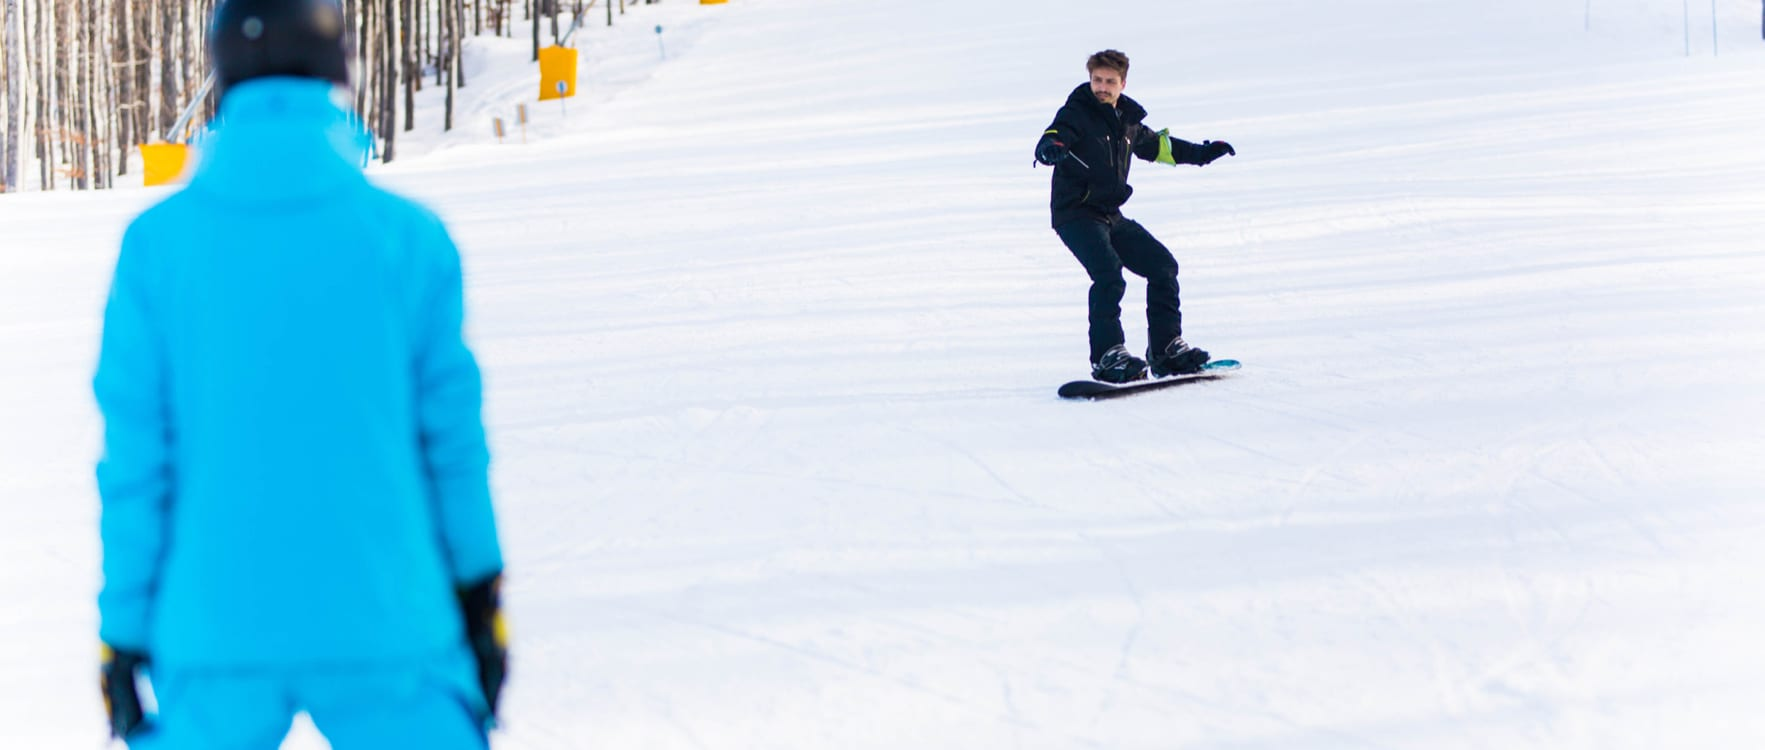 How to Become a Snowboard Instructor - JobHero